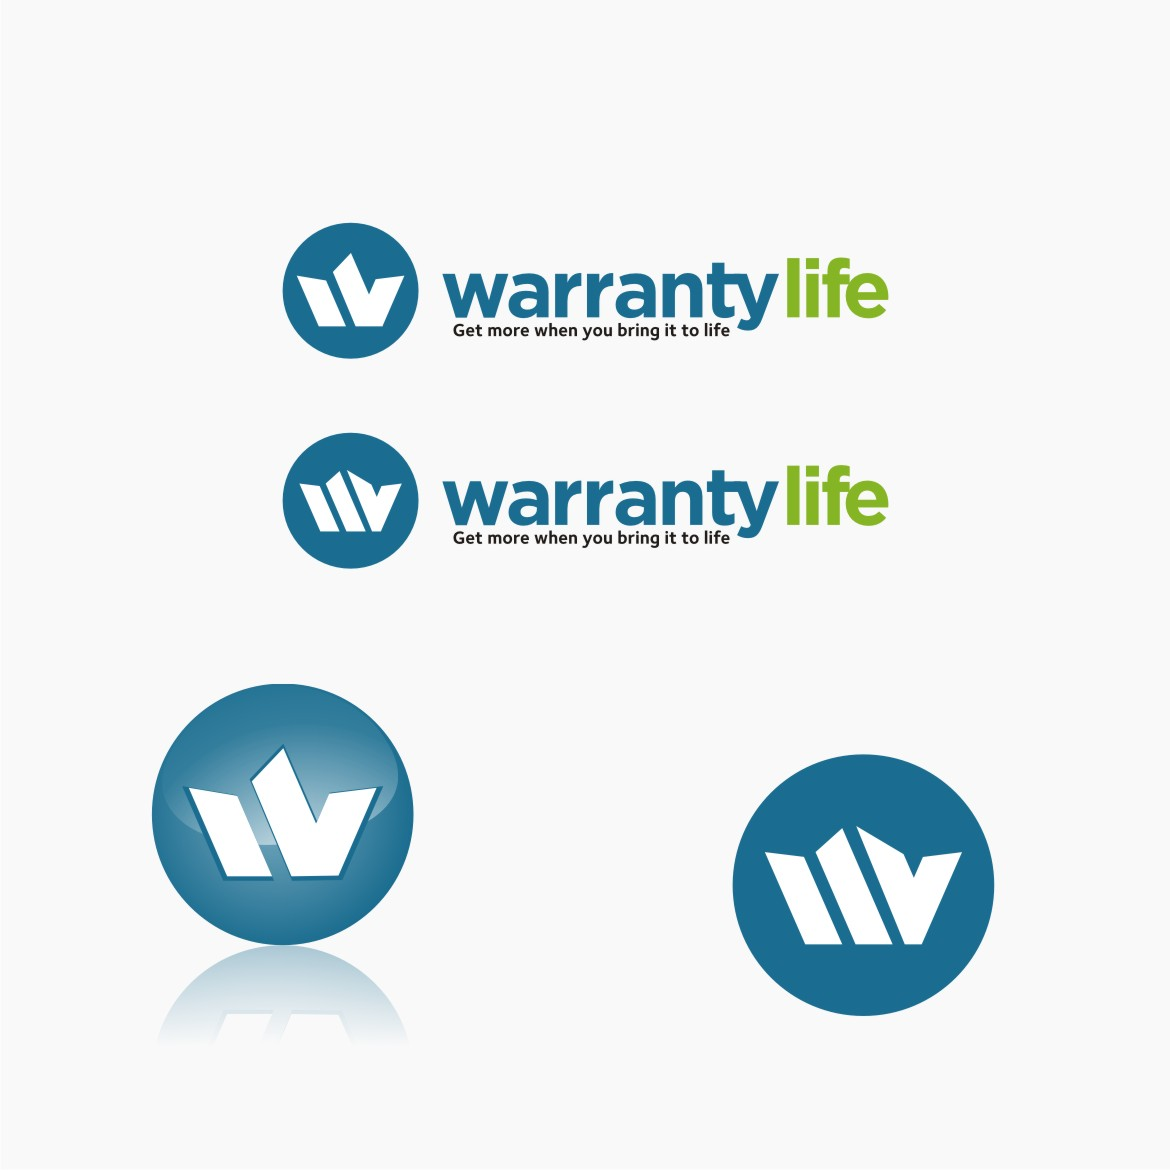 Logo Design by graphicleaf - Entry No. 108 in the Logo Design Contest WarrantyLife Logo Design.